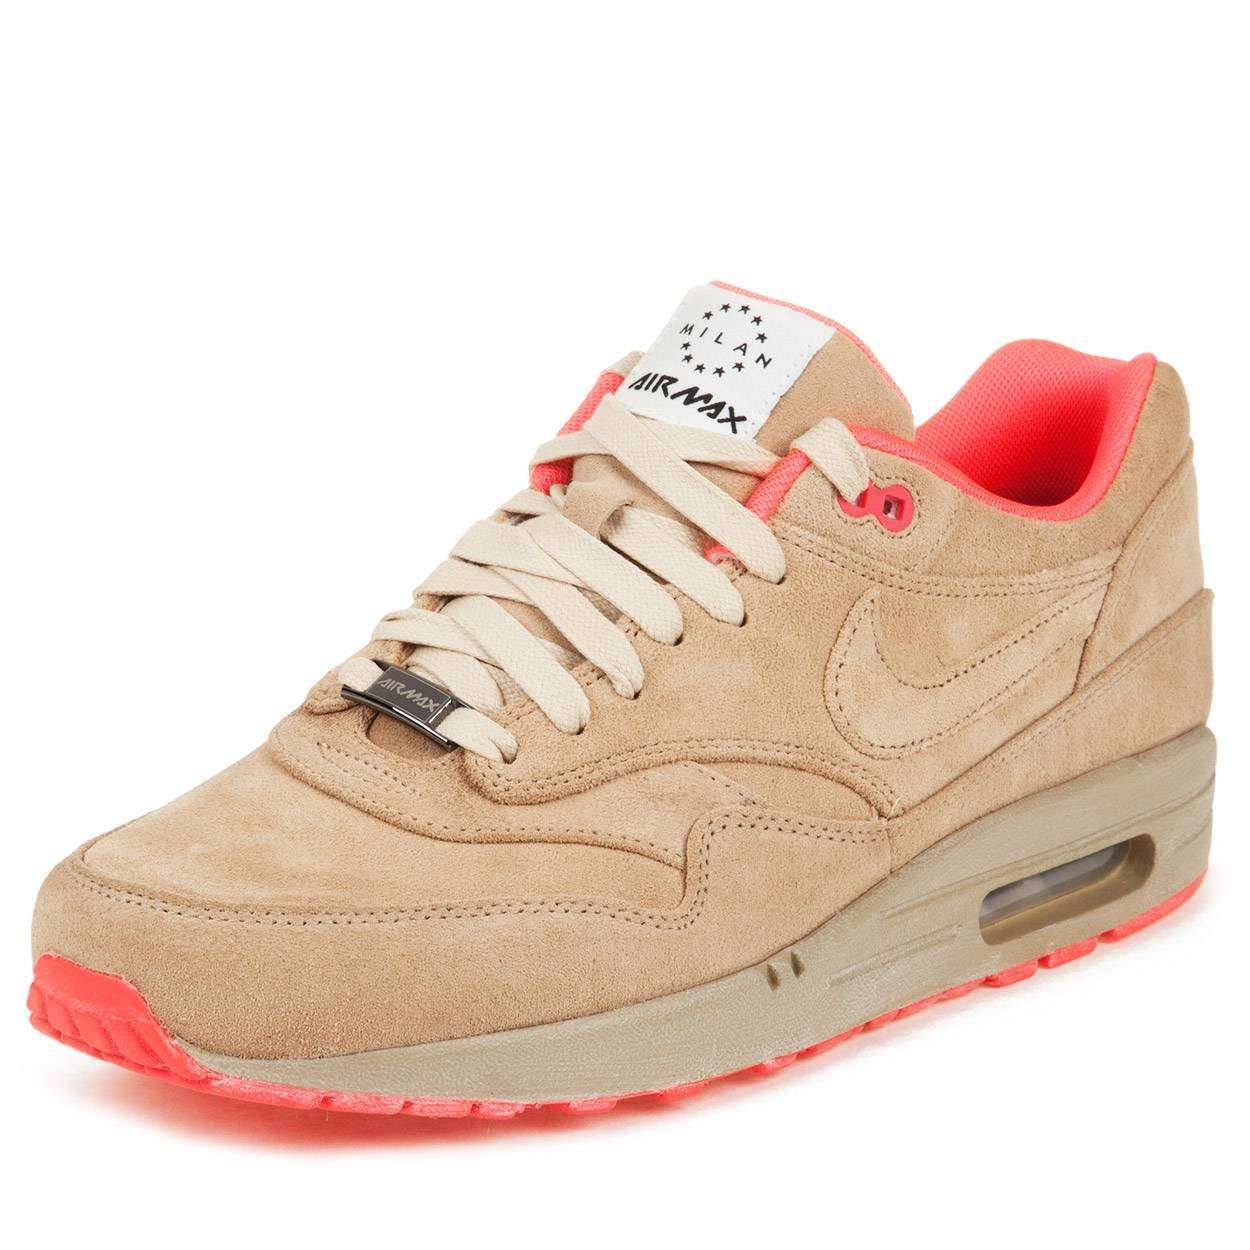 best loved c4f4f bee88 Amazon.com   Nike Air Max 1 Milano QS 8 587922 226 Tan Pink   Athletic